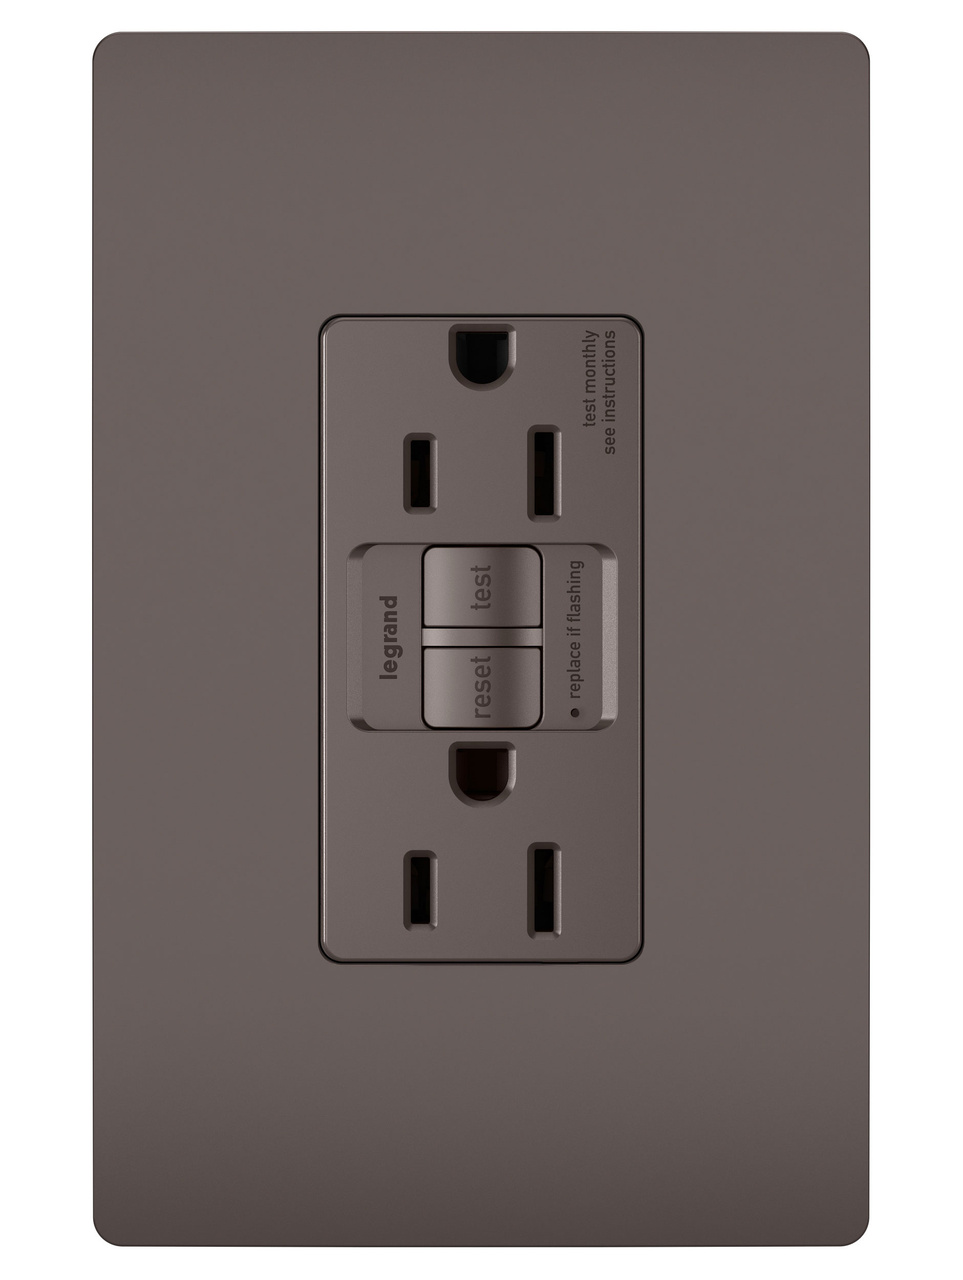 Spec-Grade 15A Self-Test Duplex GFCI, Brown